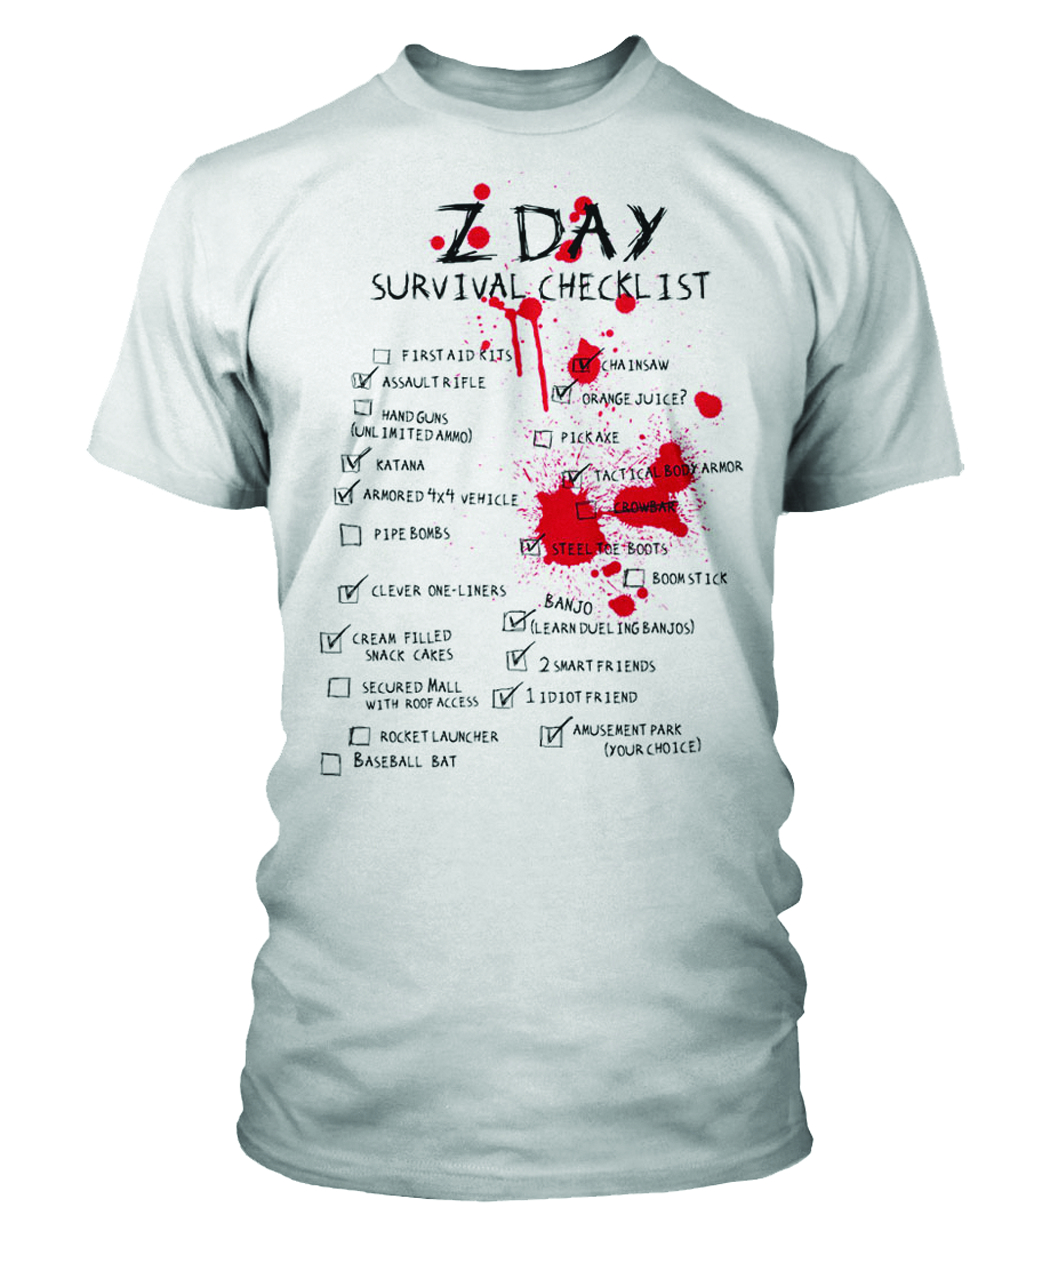 Z-DAY SURVIVAL CHECKLIST WHT T/S MED